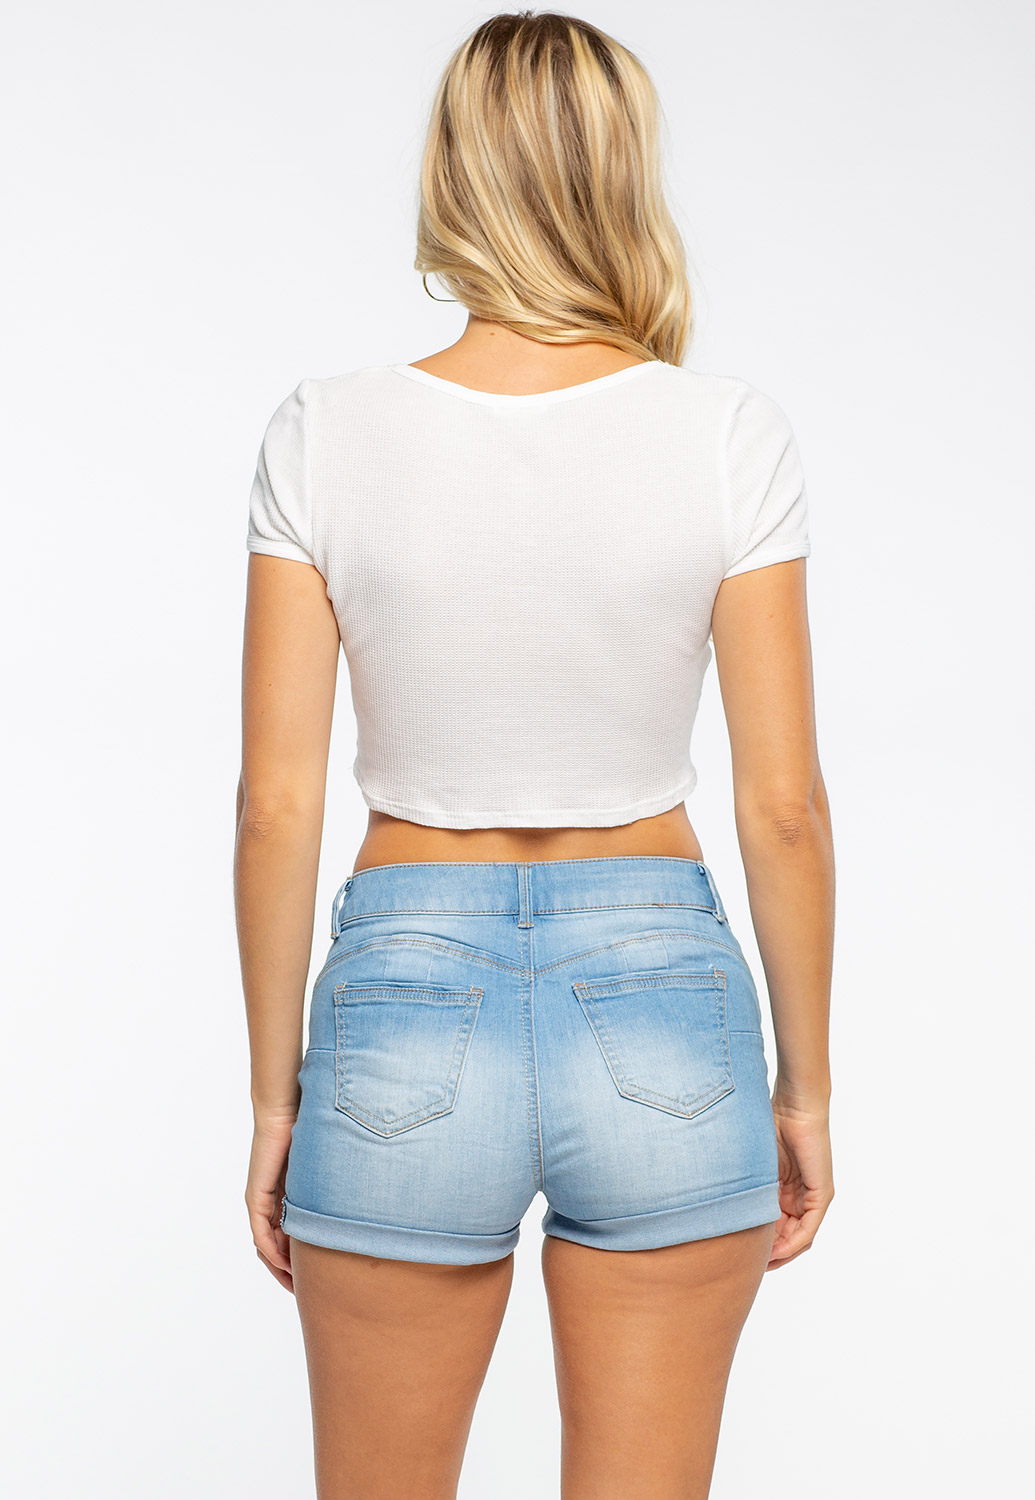 Front Button Deep Round Crop Top